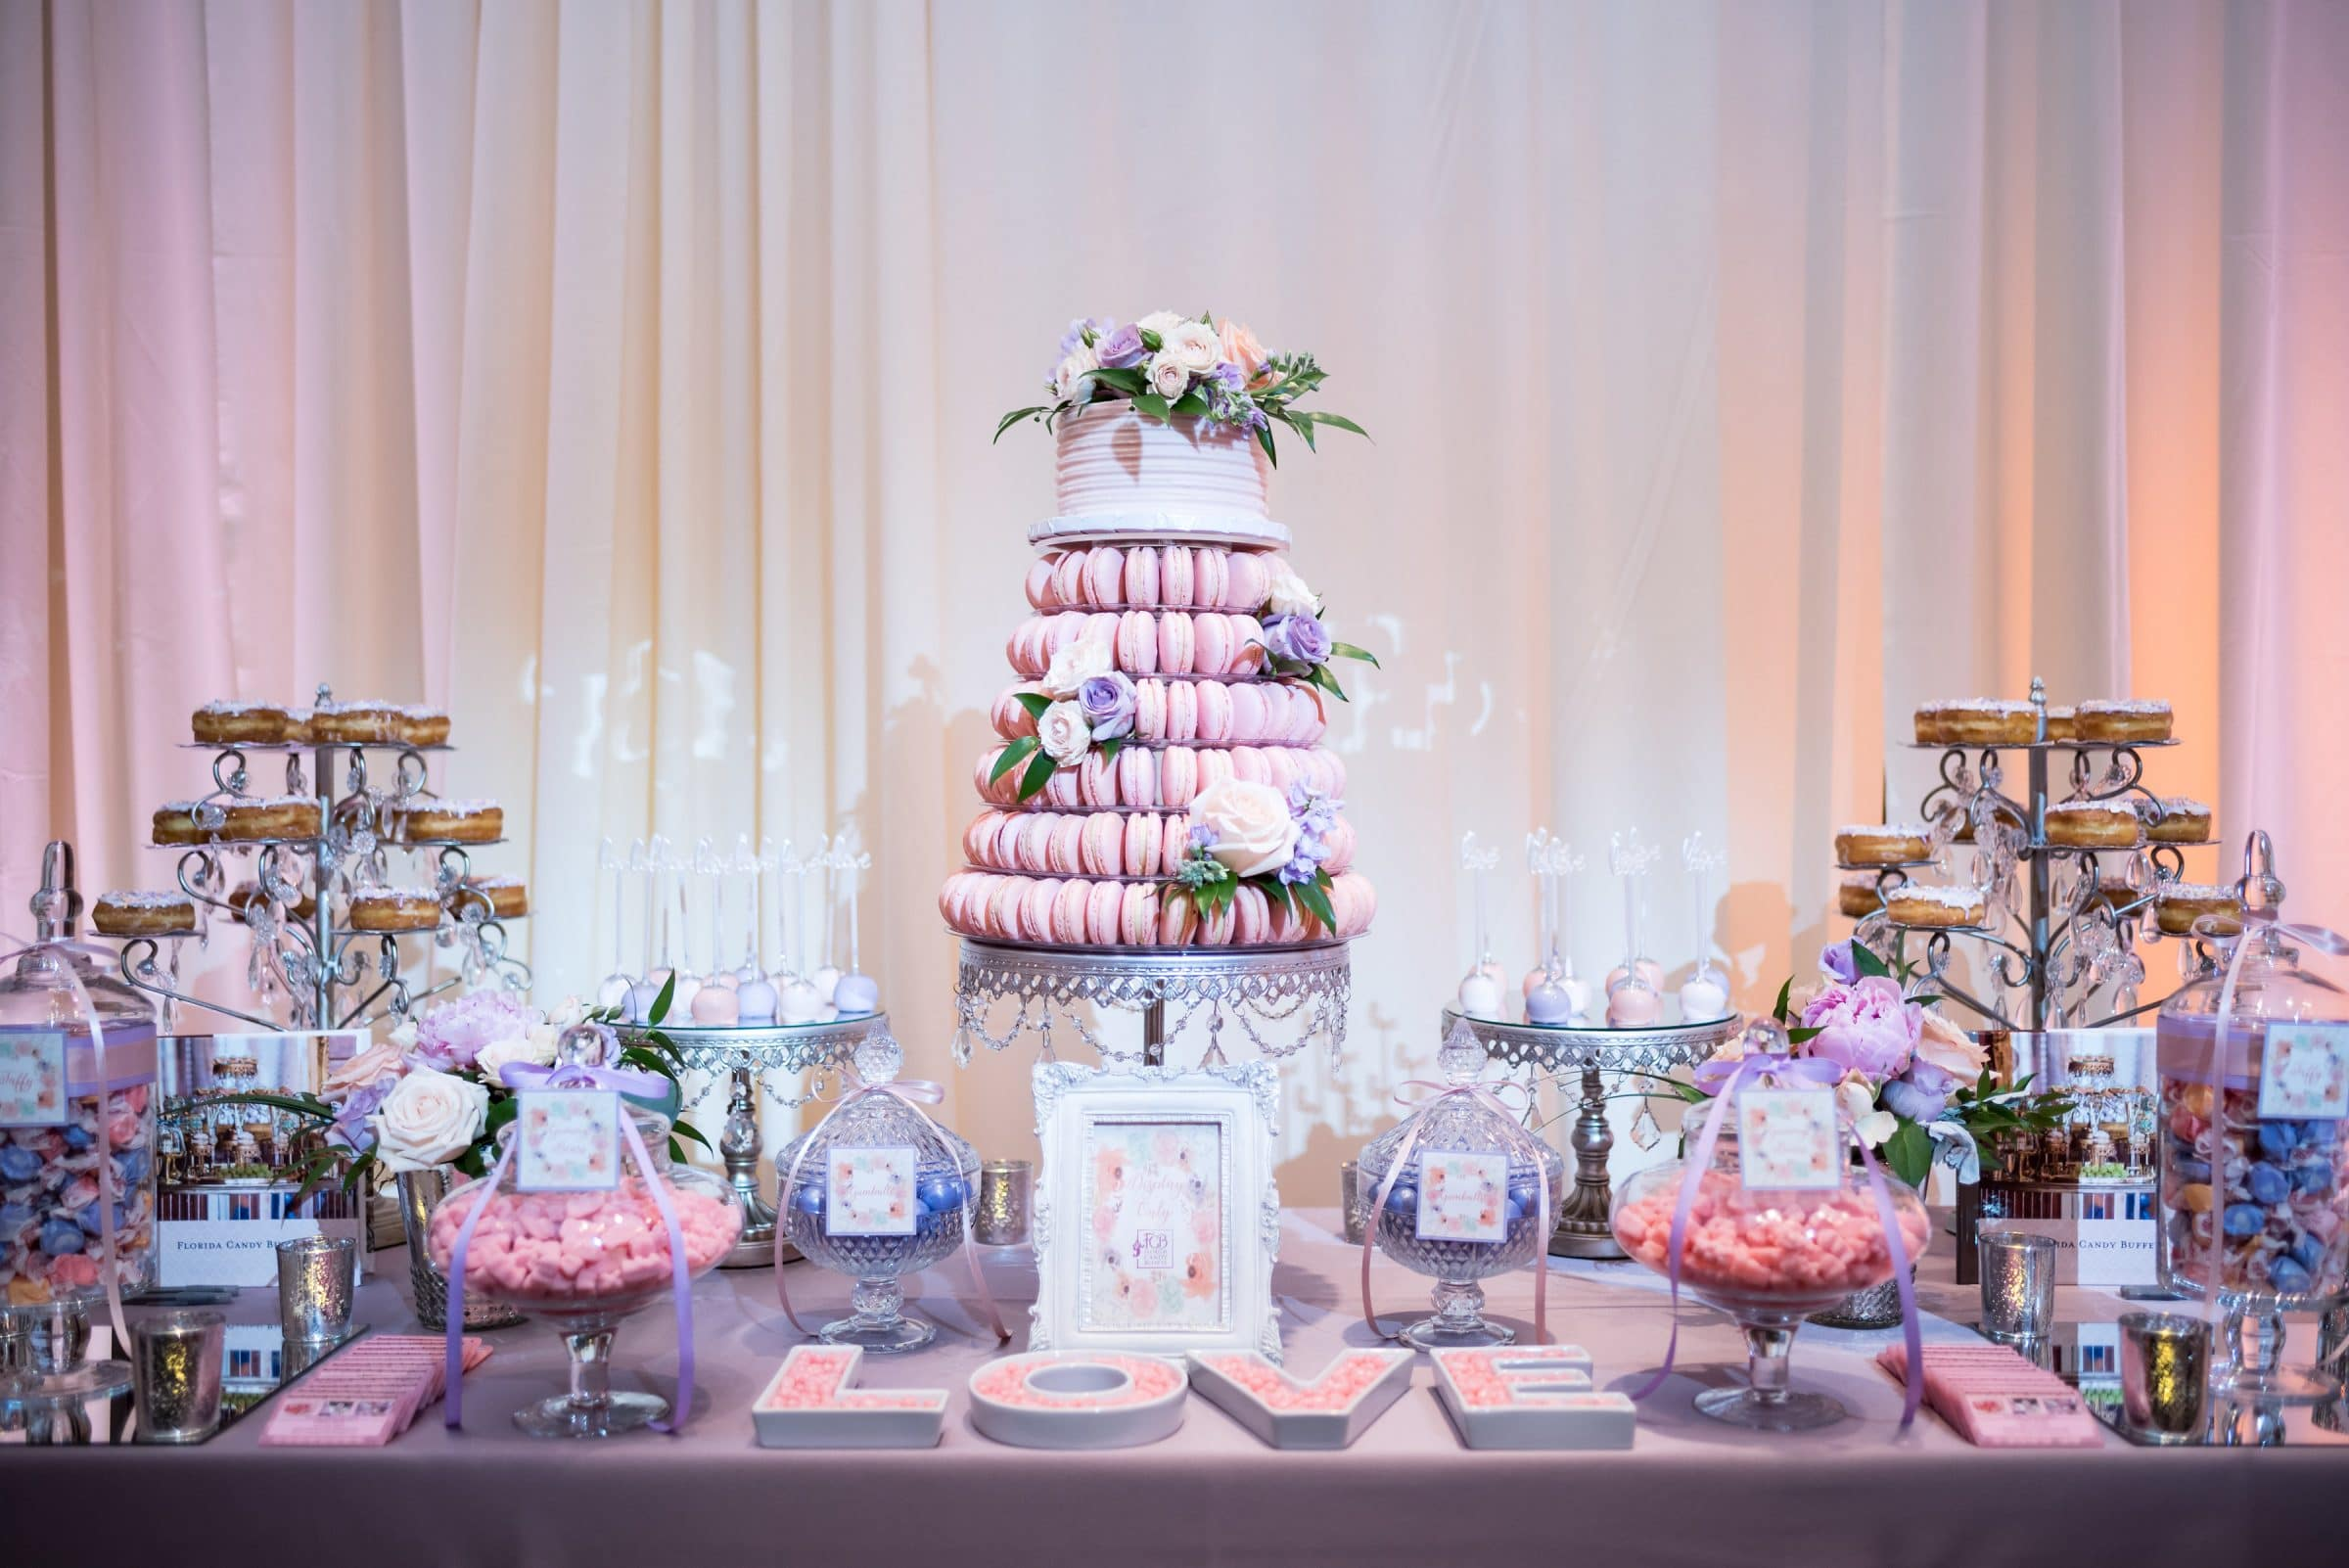 Tower of Pink Macaroons on a Table of Assorted Pink and Purple Desserts